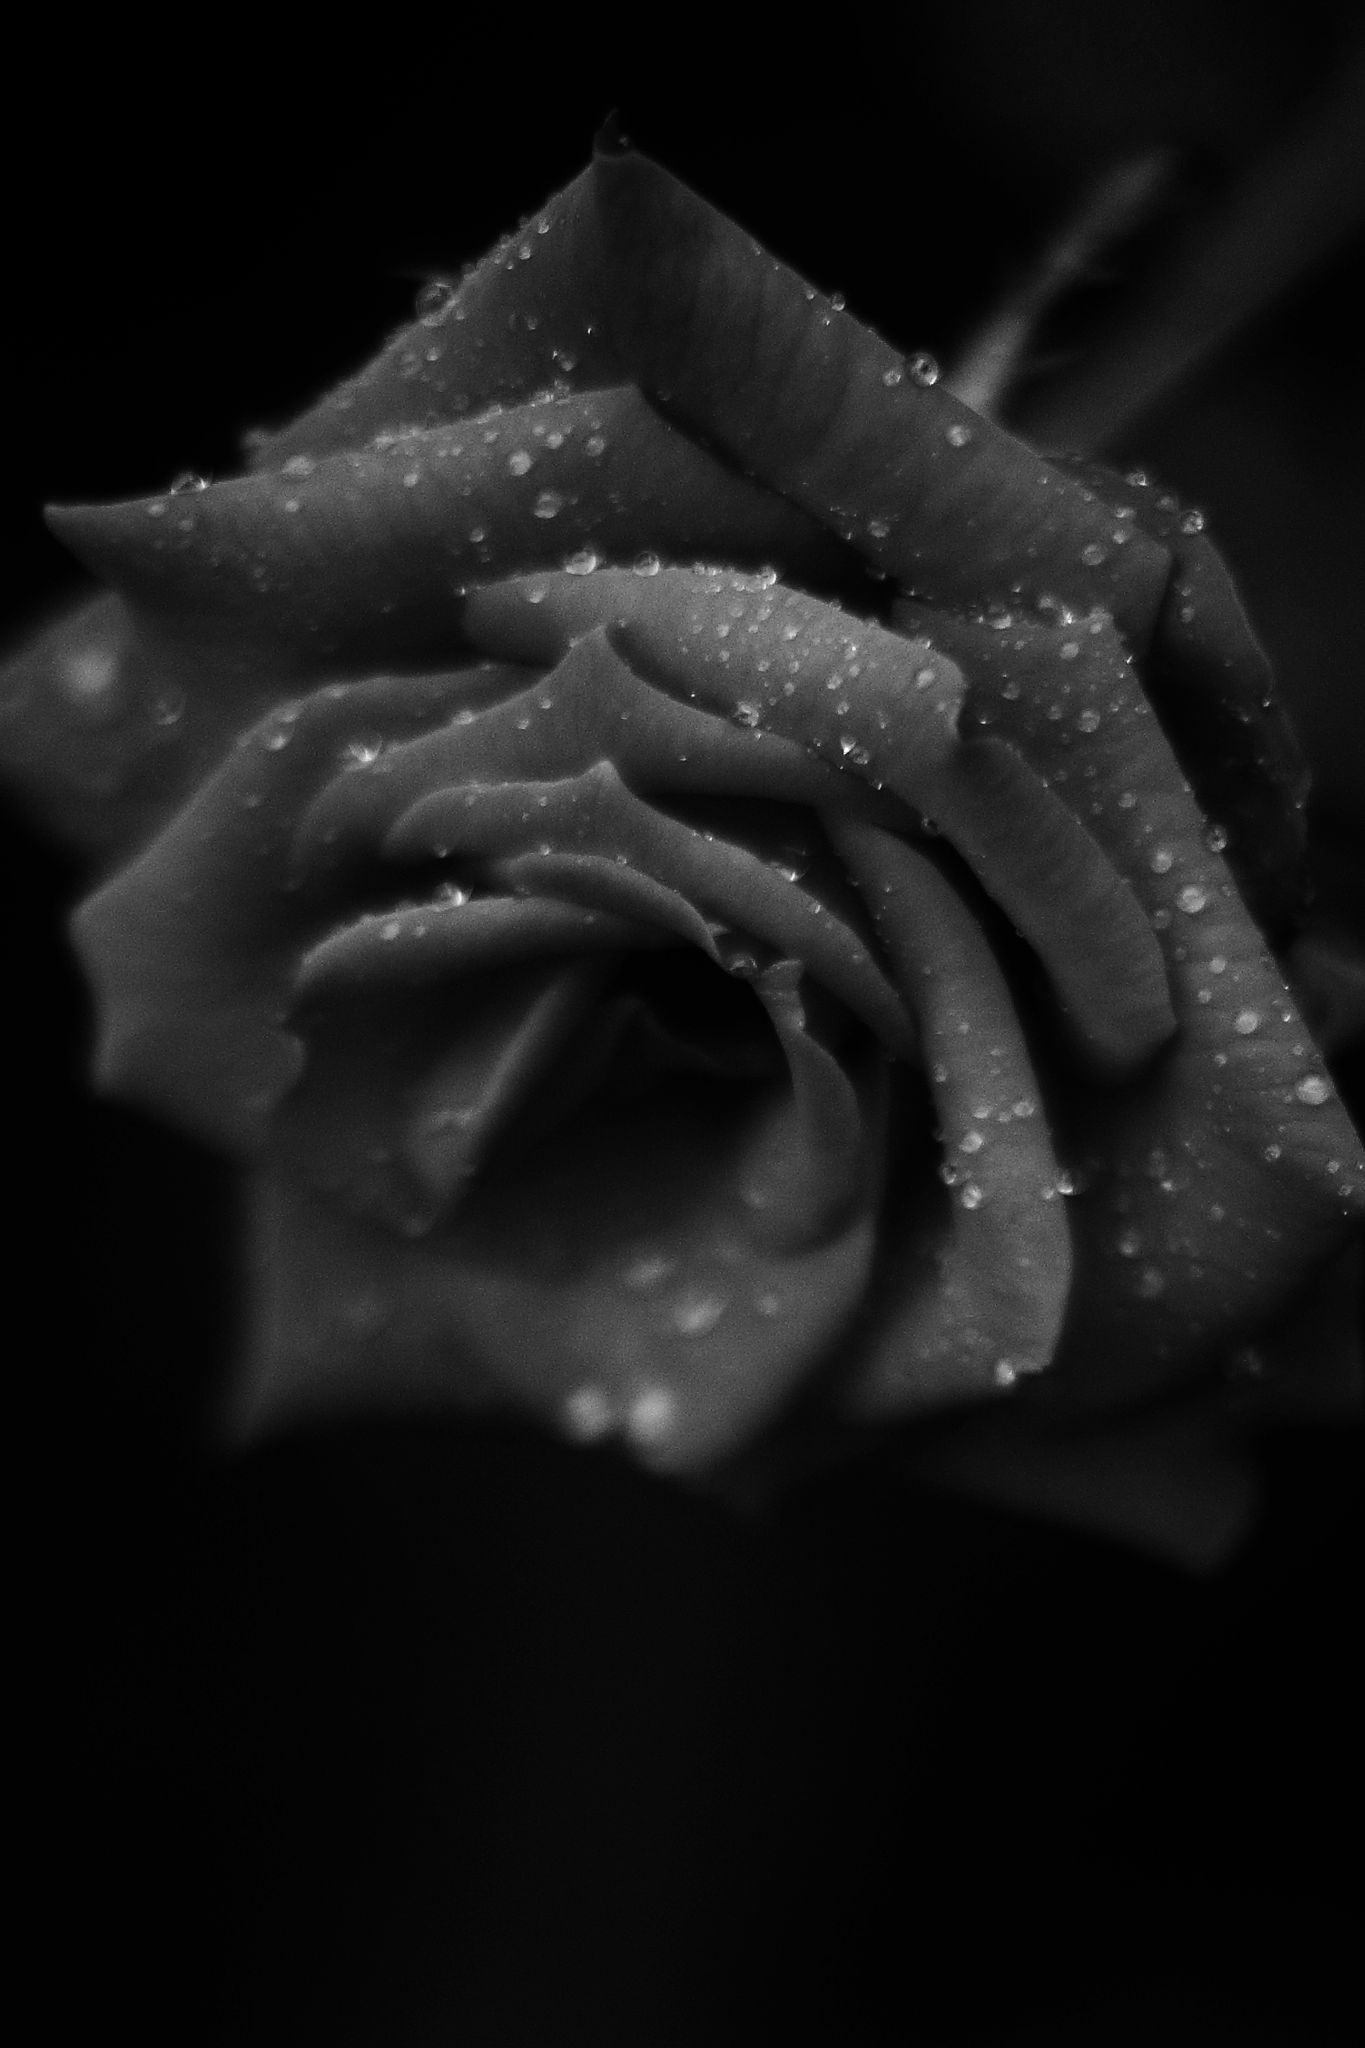 Rose after rain by Koji Ishimoto